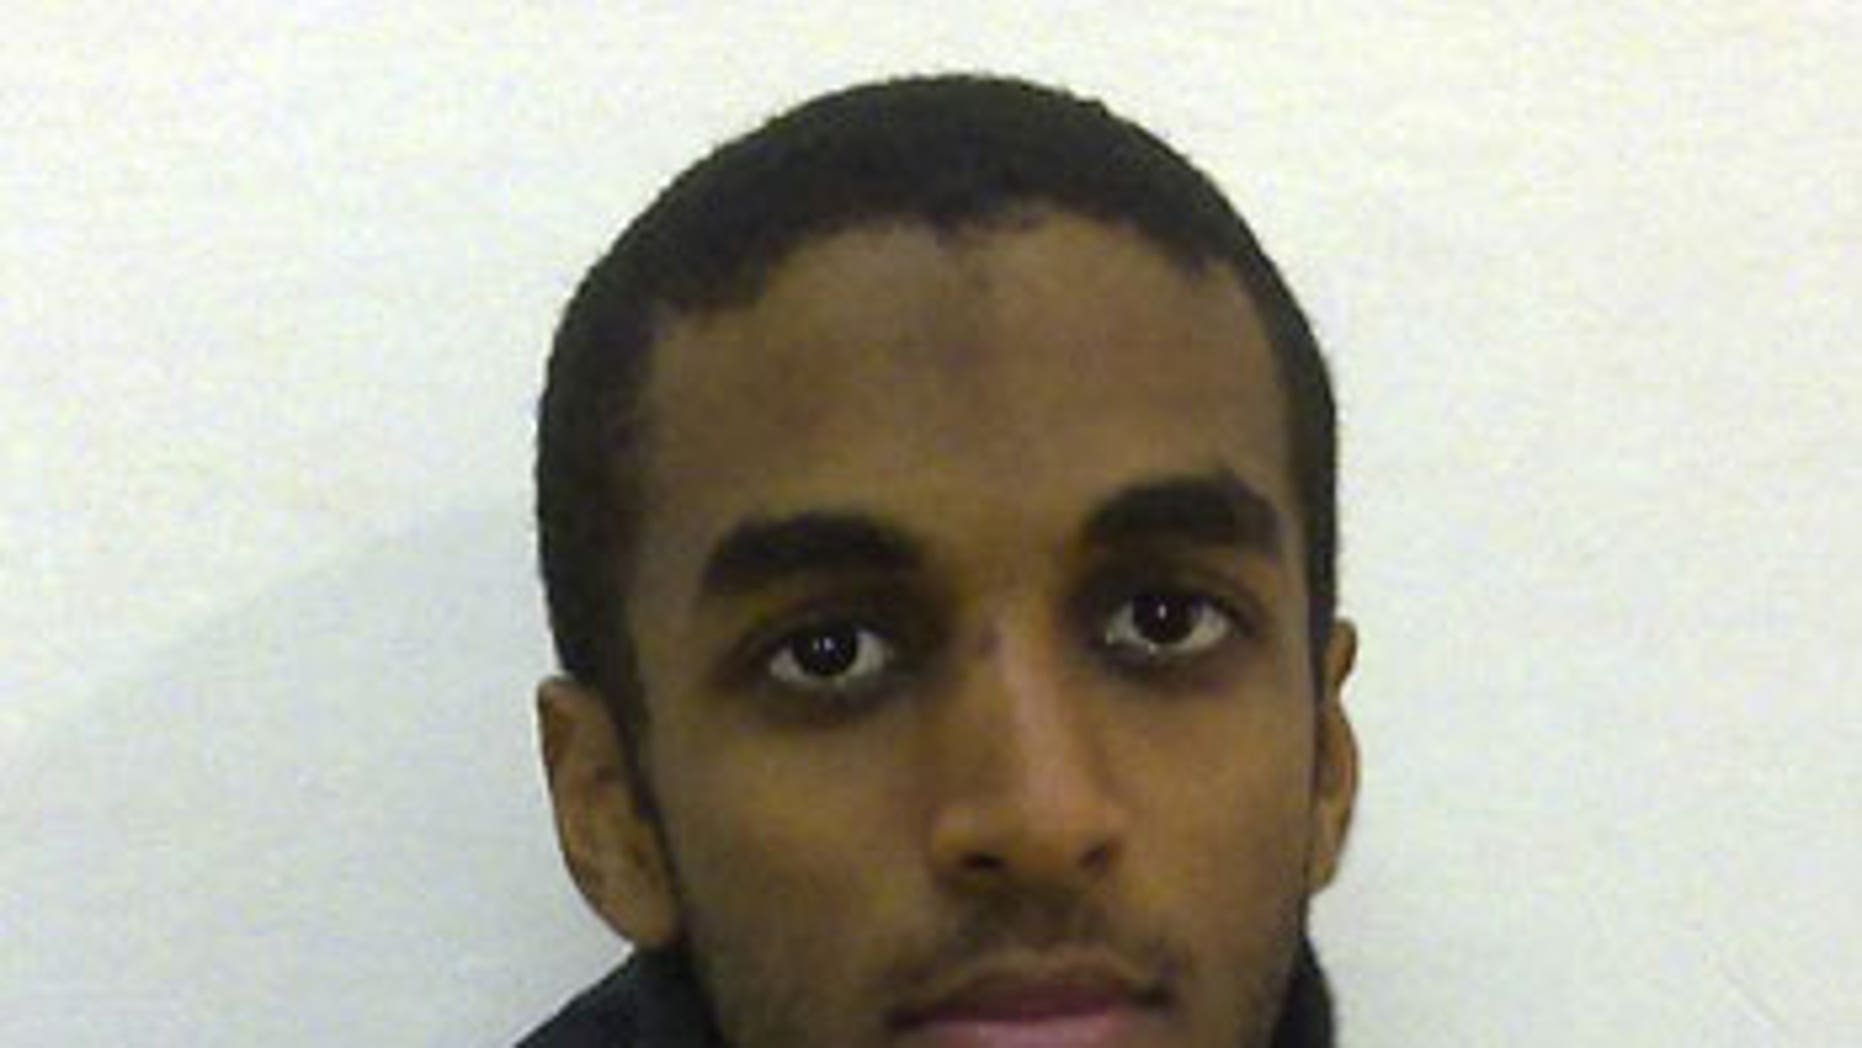 Dec. 11: An undated picture shows a young man identified as Ahmed Abdulah Minni, who police say was one of the five Americans arrested in Pakistan.